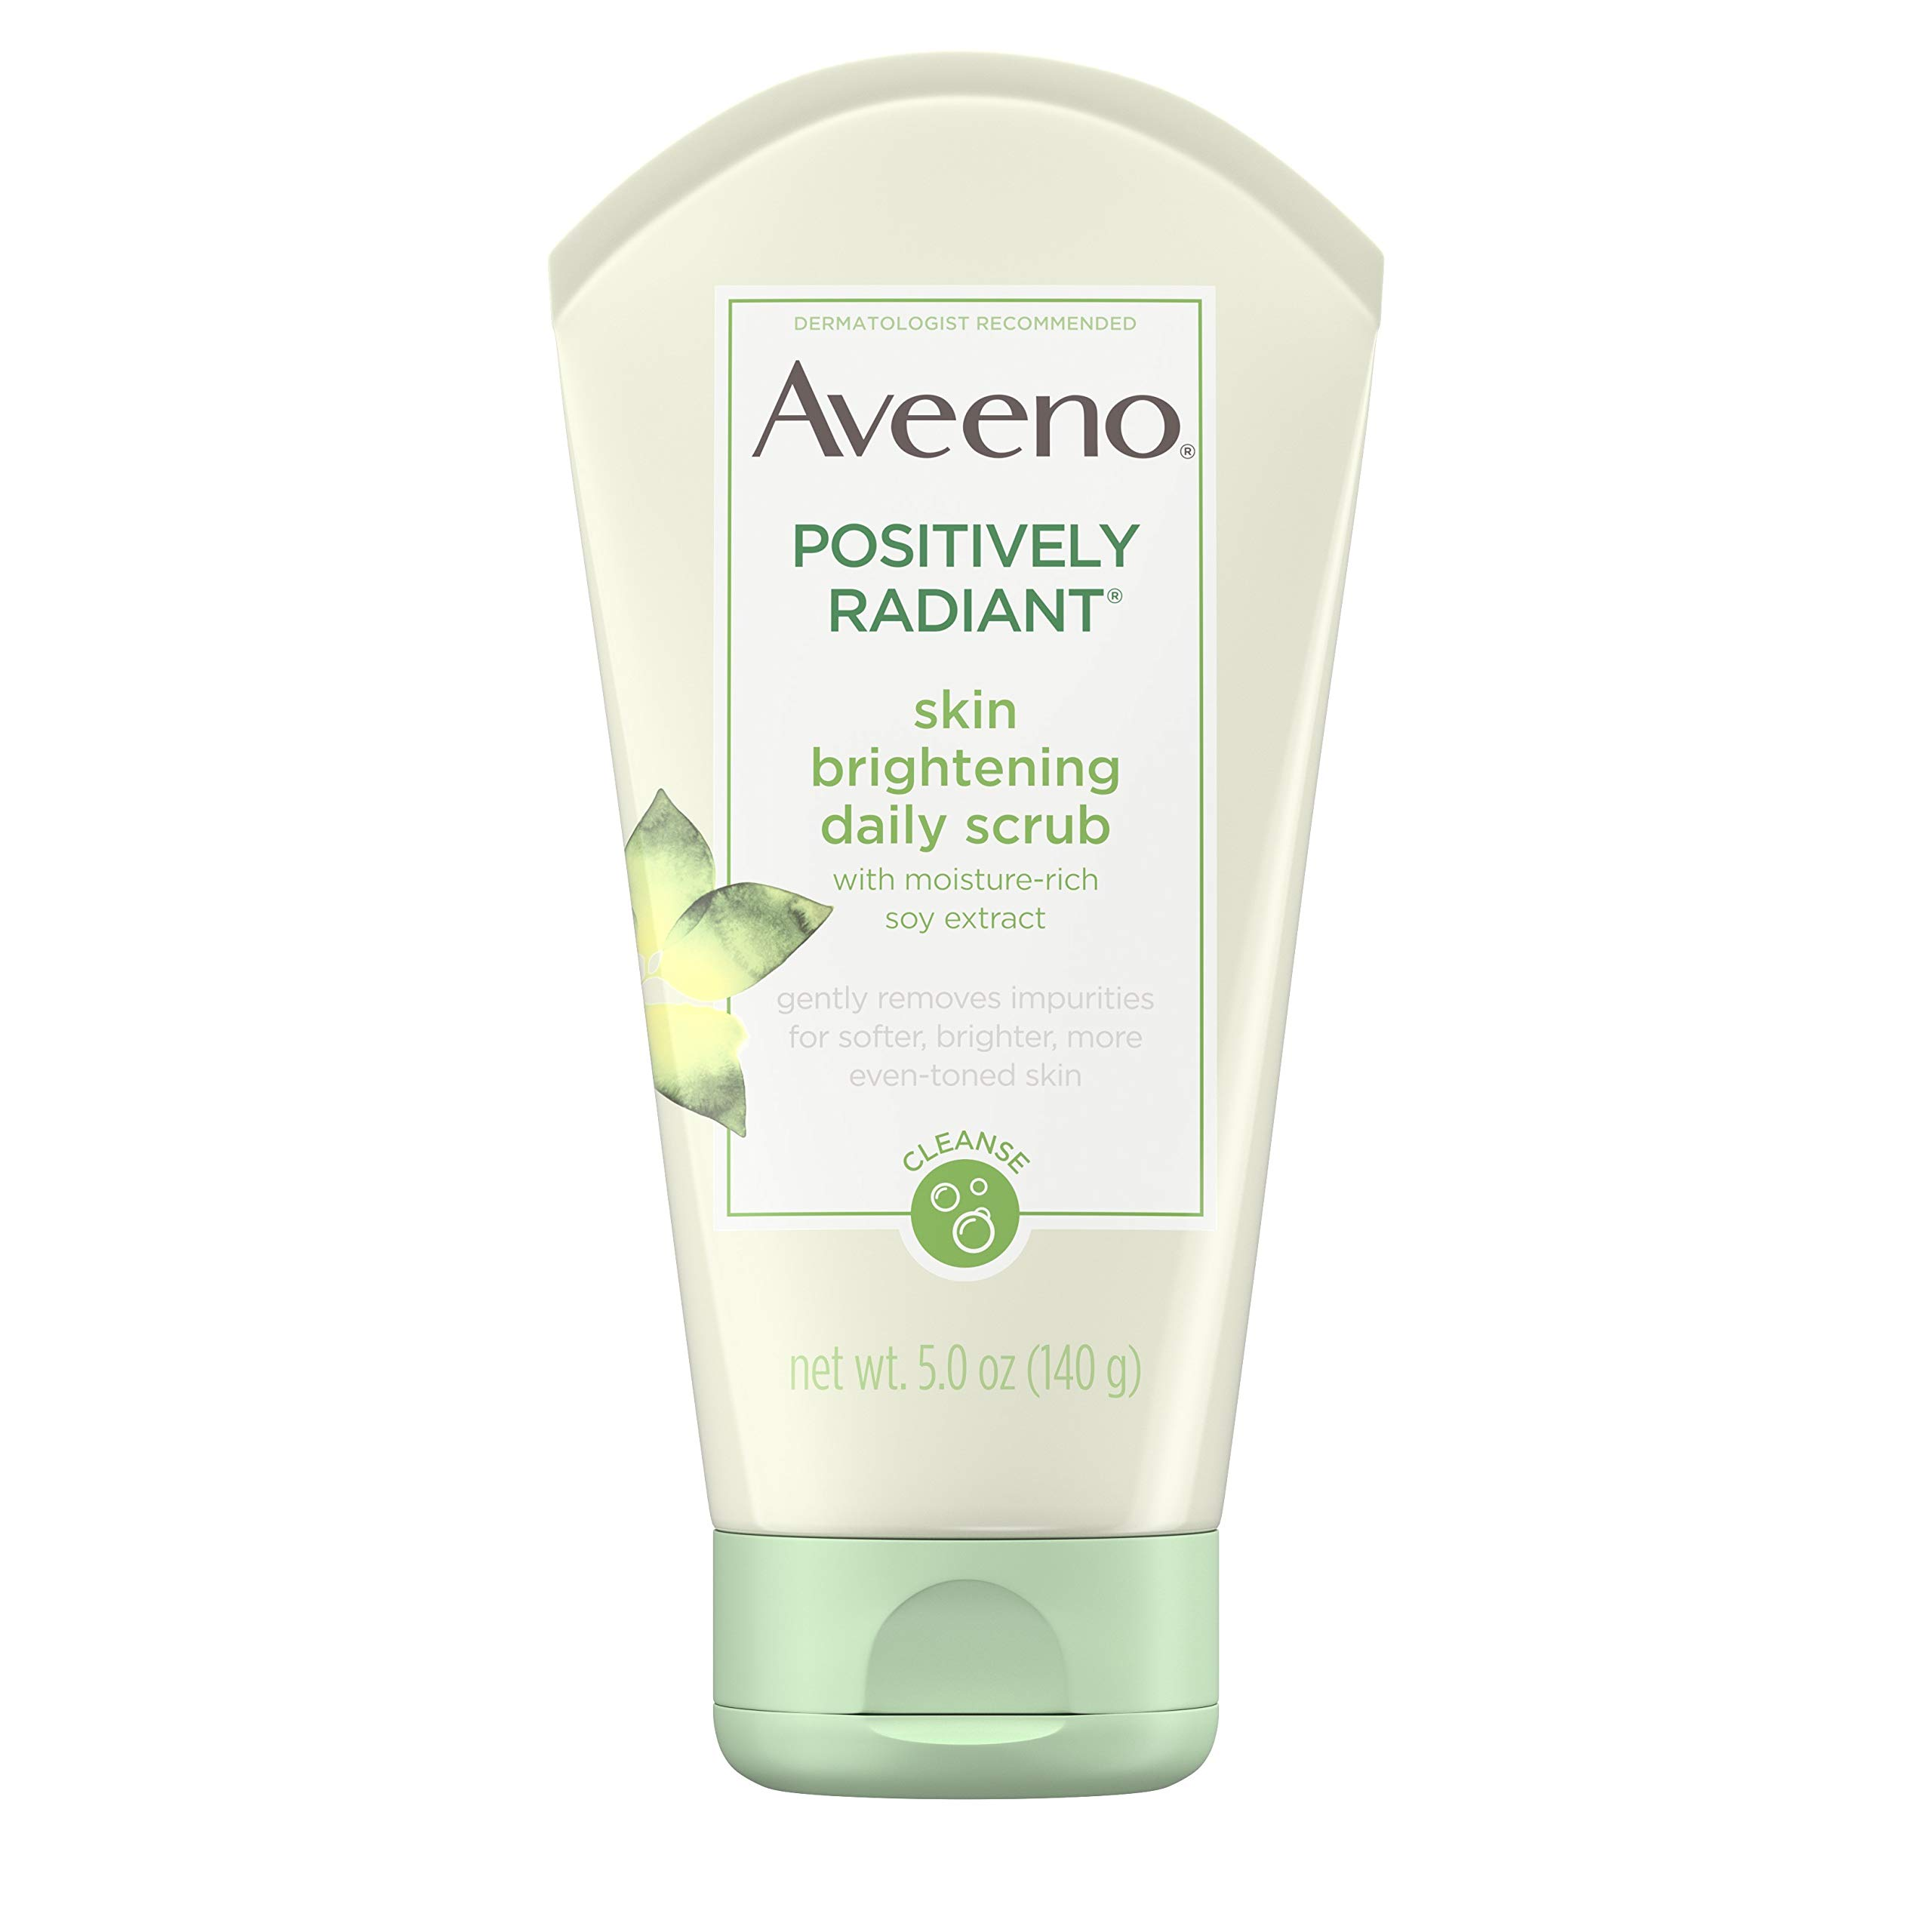 Aveeno Positively Radiant Skin Brightening Exfoliating Daily Facial Scrub with Moisture-Rich Soy Extract, Jojoba & Castor Oils, Soap-Free, Hypoallergenic & Non-Comedogenic Face Cleanser, 5 Oz